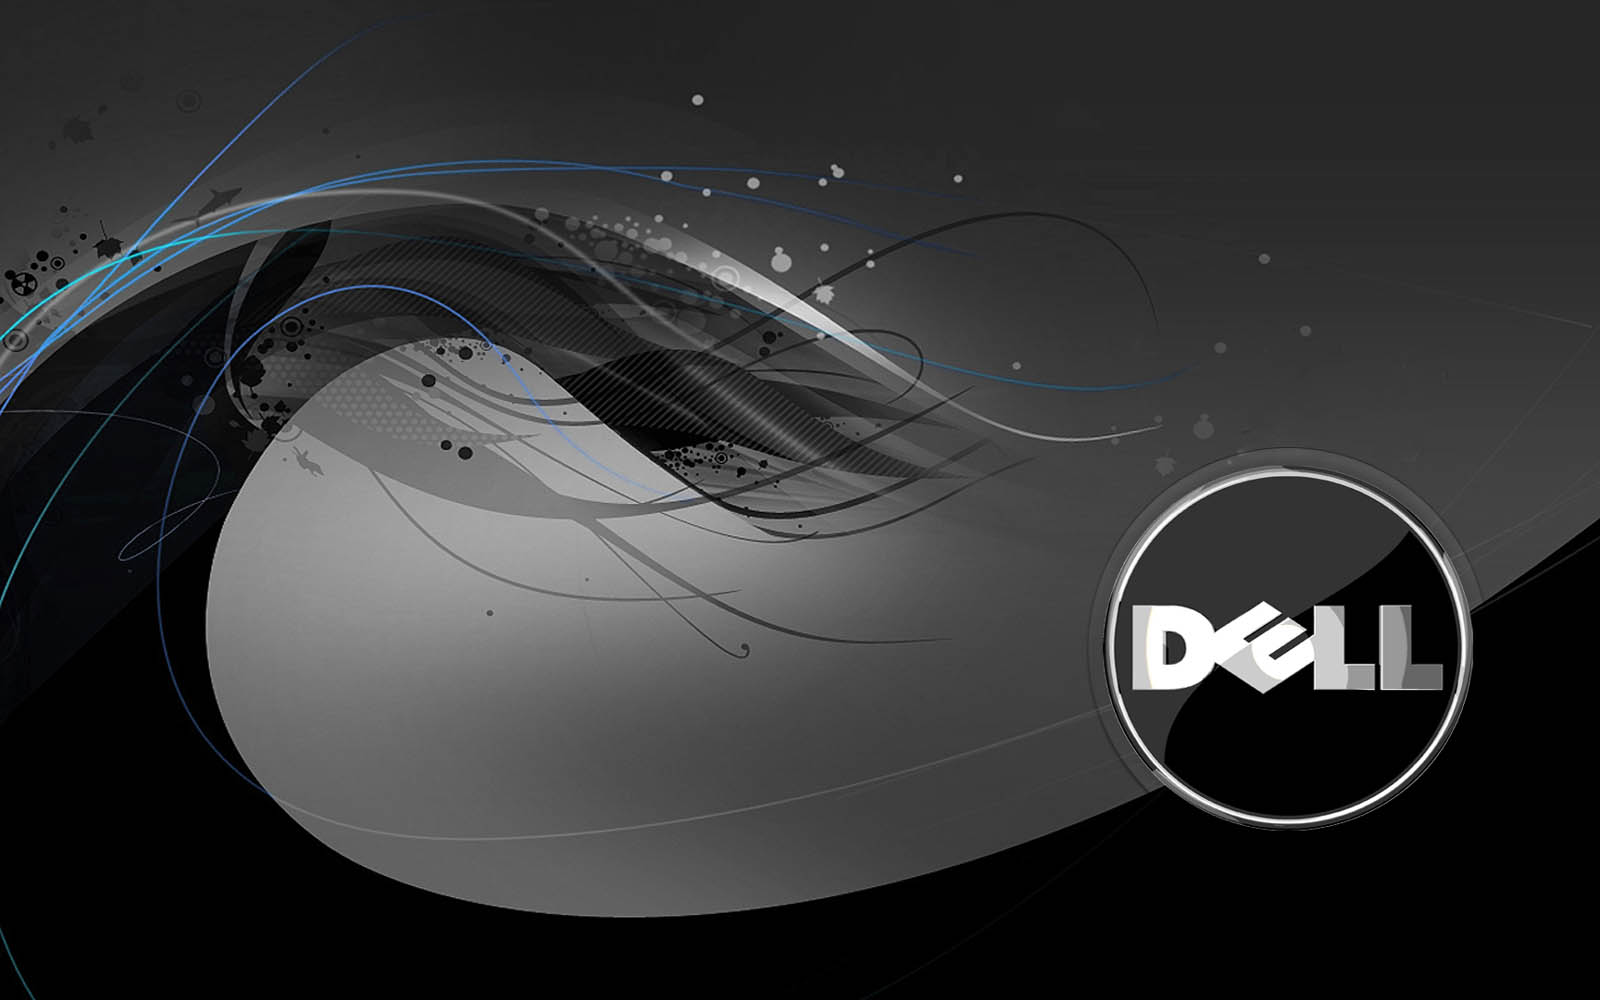 wallpapers dell wallpapers